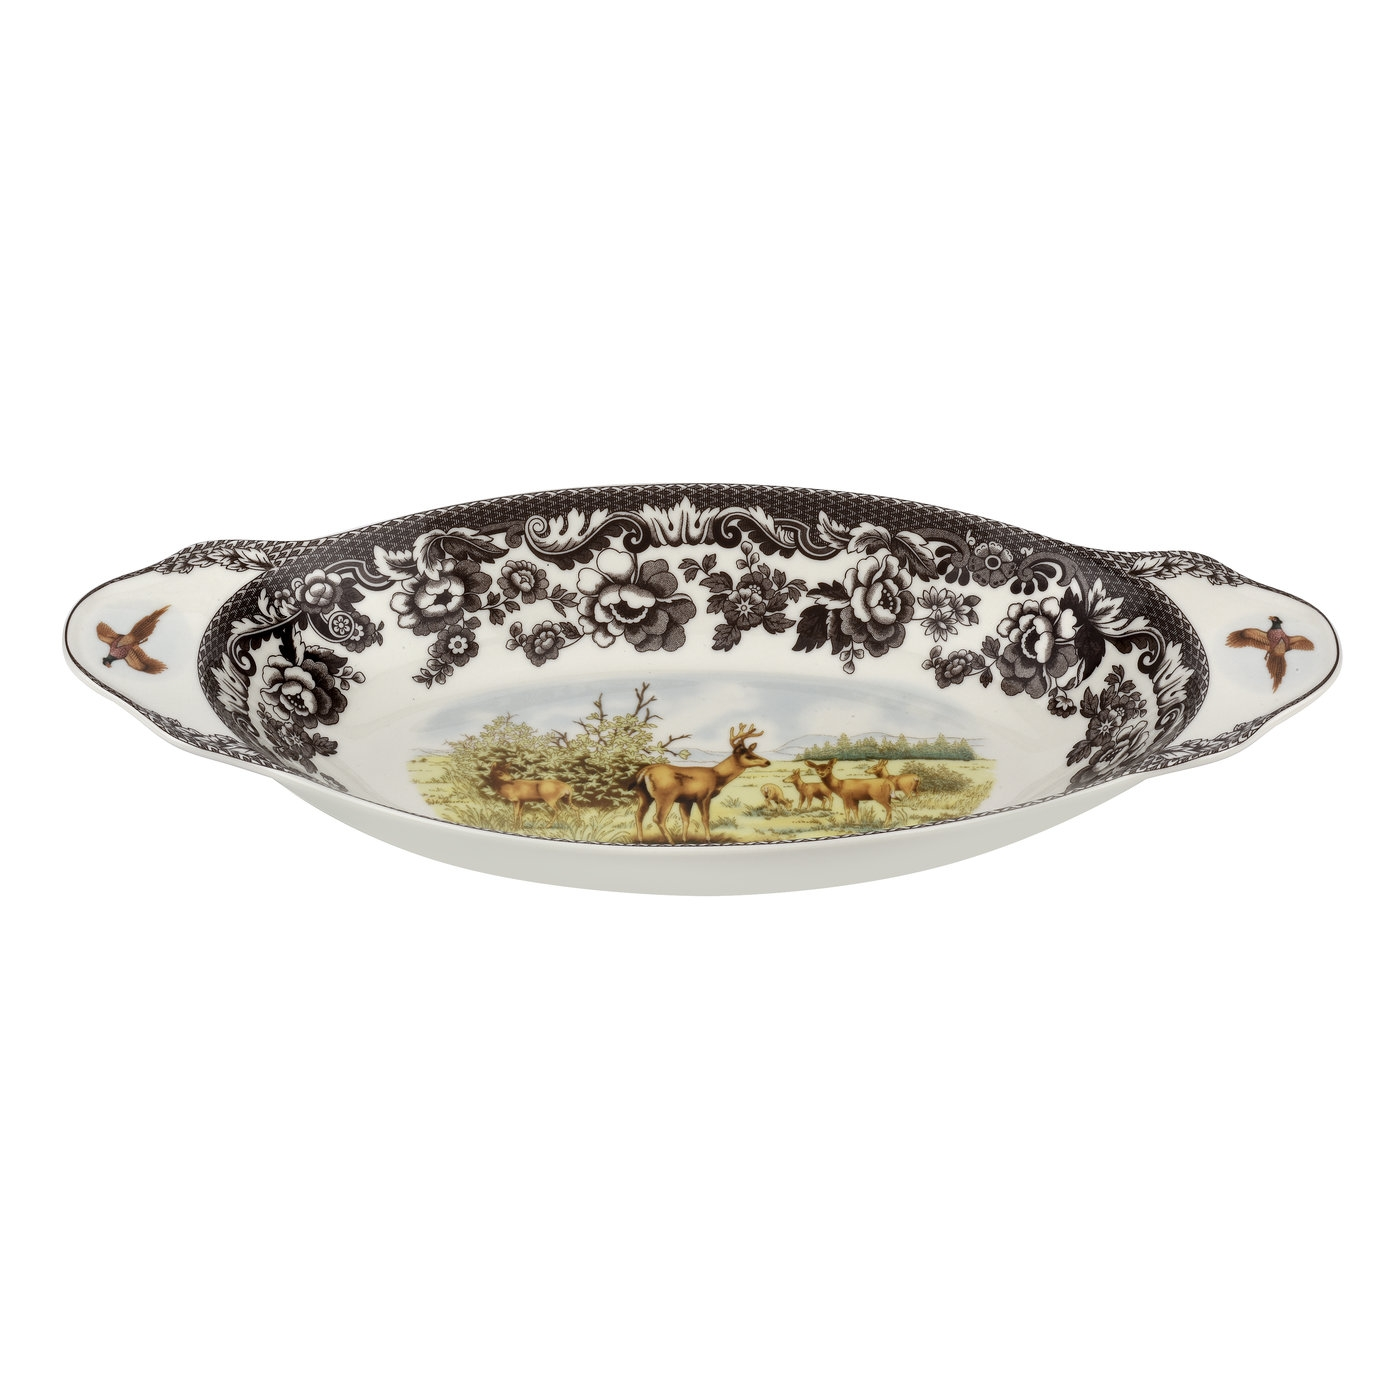 Spode Woodland Bread Tray 15.25 Inch (Mule Deer) image number 0